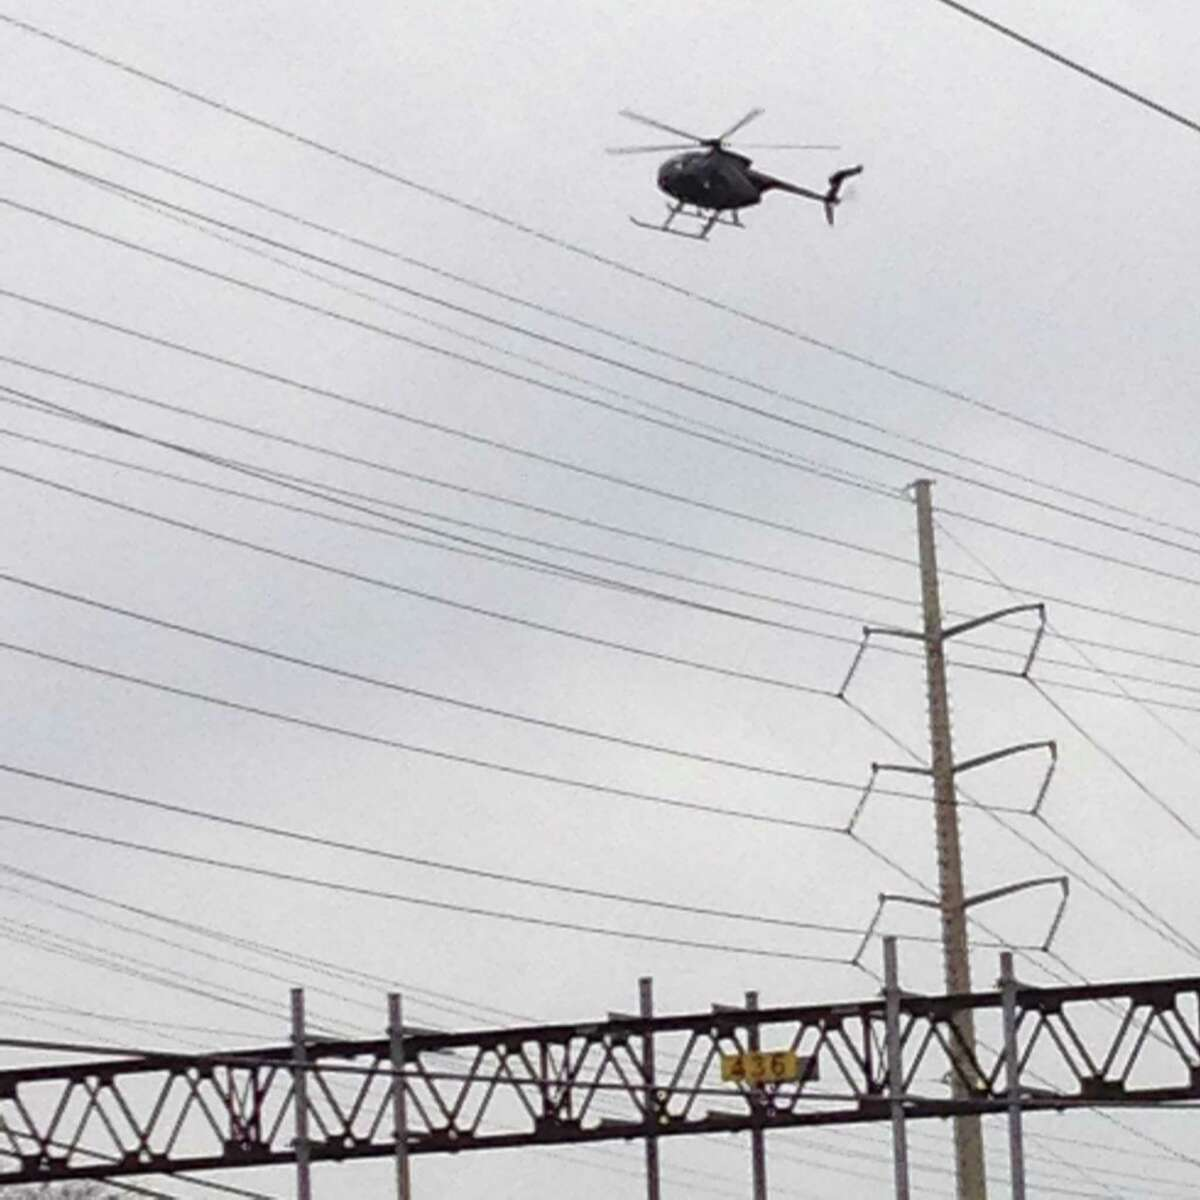 A helicopter is seen hovering low over train tracks in Darien on Sunday, January 17, 2015.